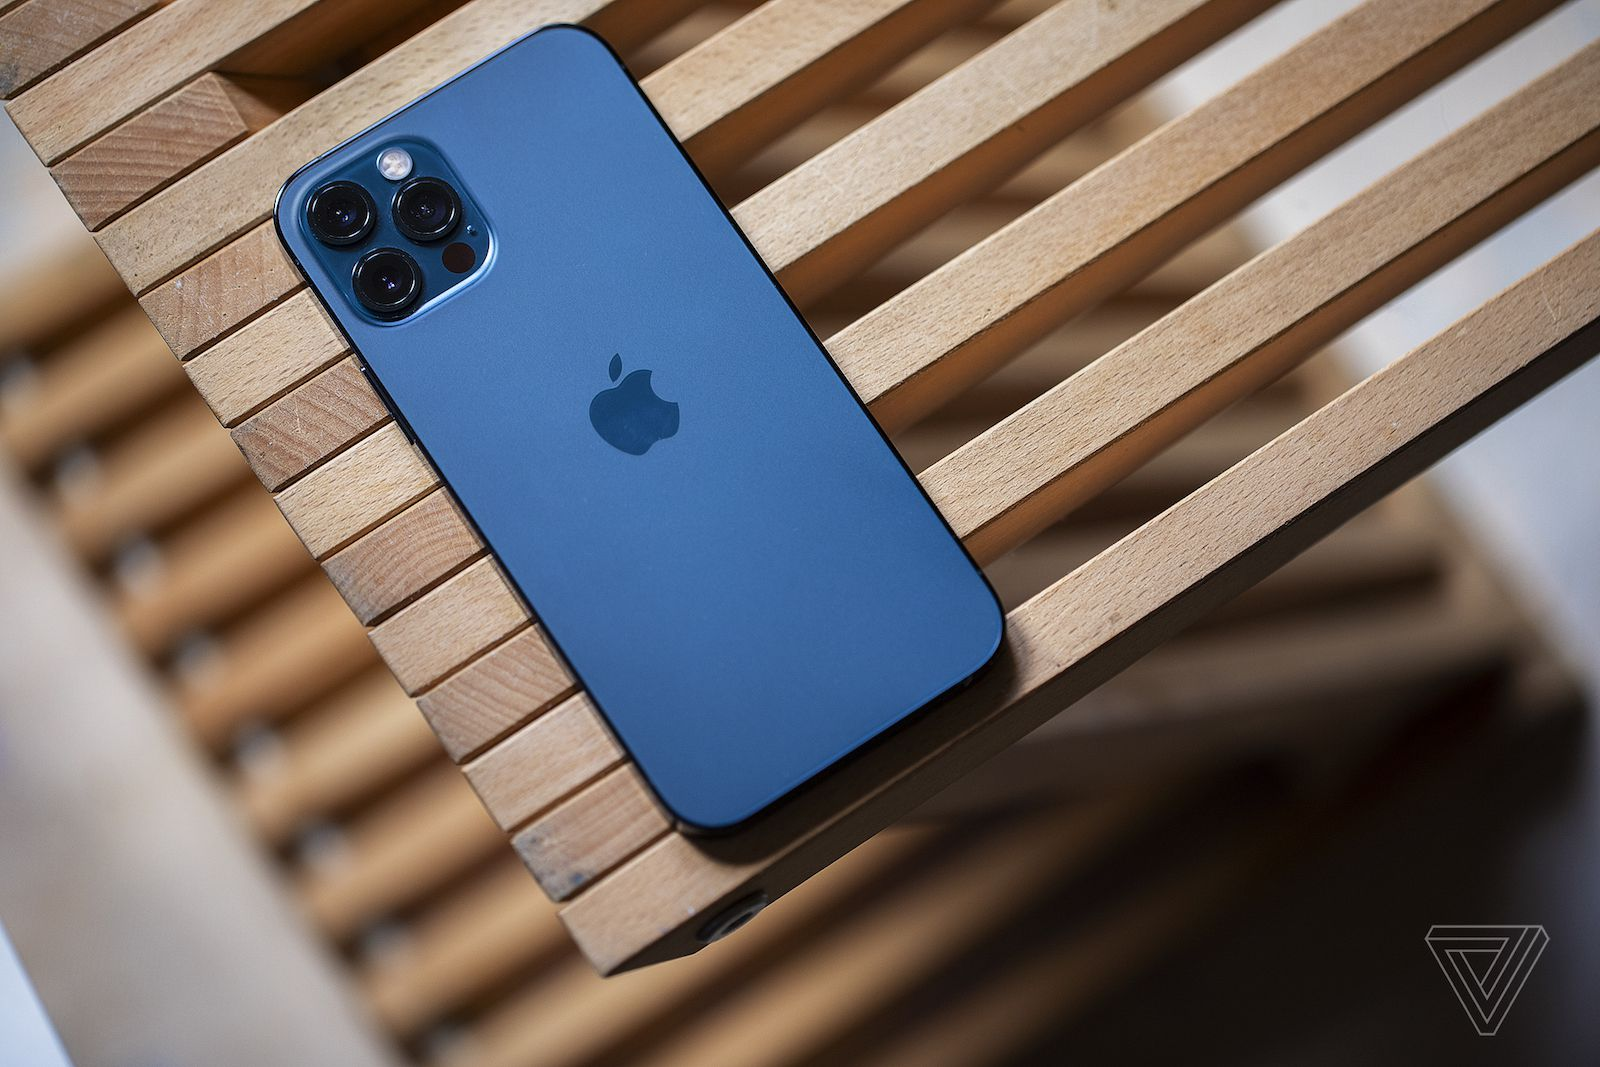 apple-iphone-12-pro-max-review-the-best-smartphone-camera-you-can-get